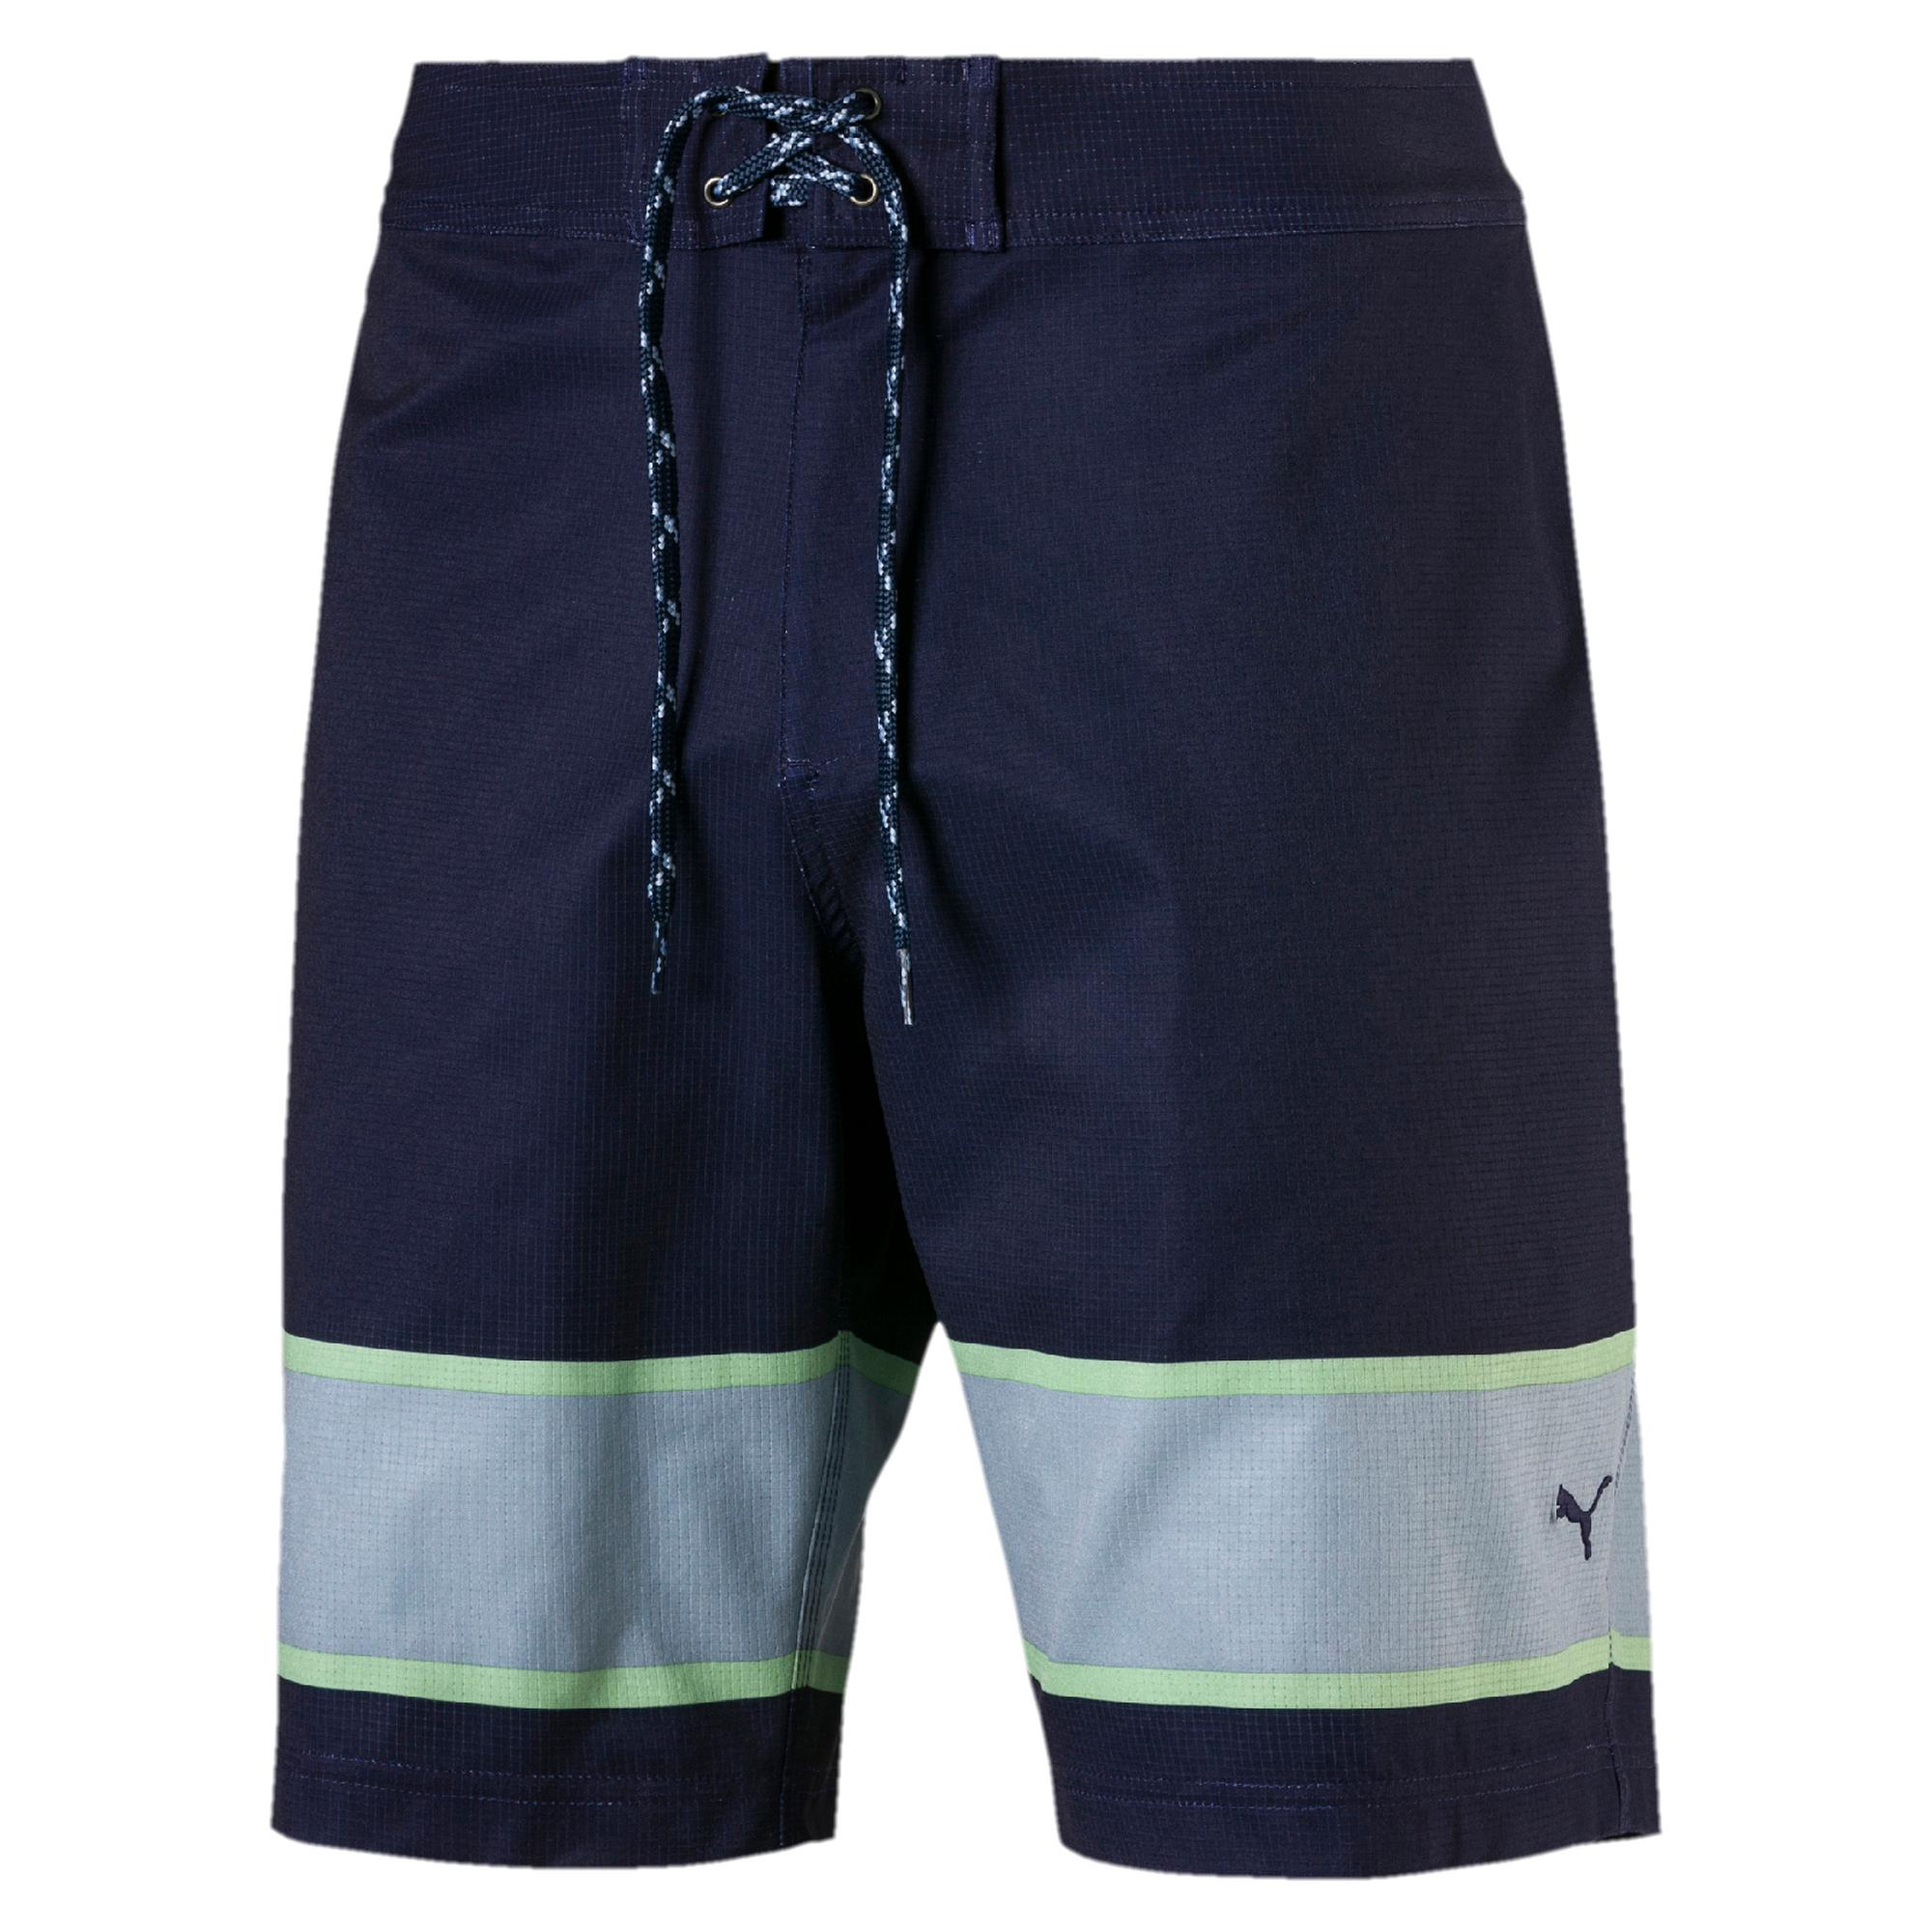 Men's Hang Ten Shorts